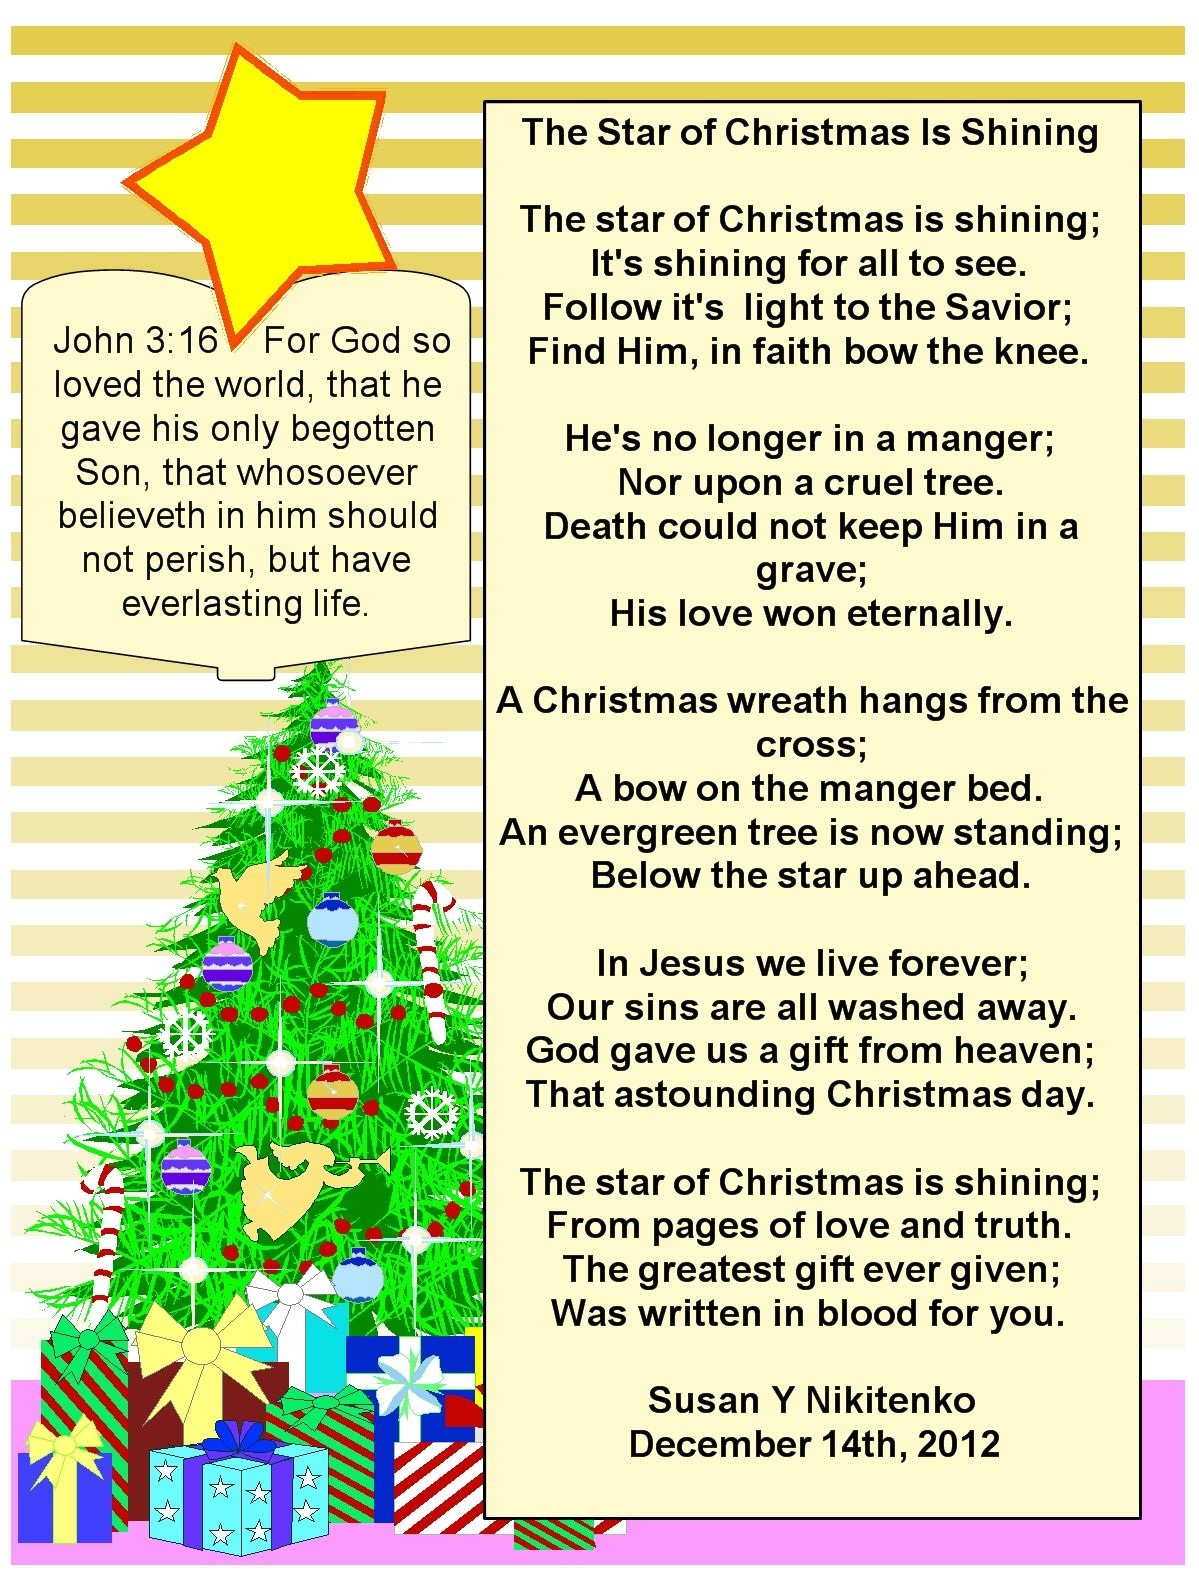 Inspirational Christian Christmas Poems | Christmas Poems ...